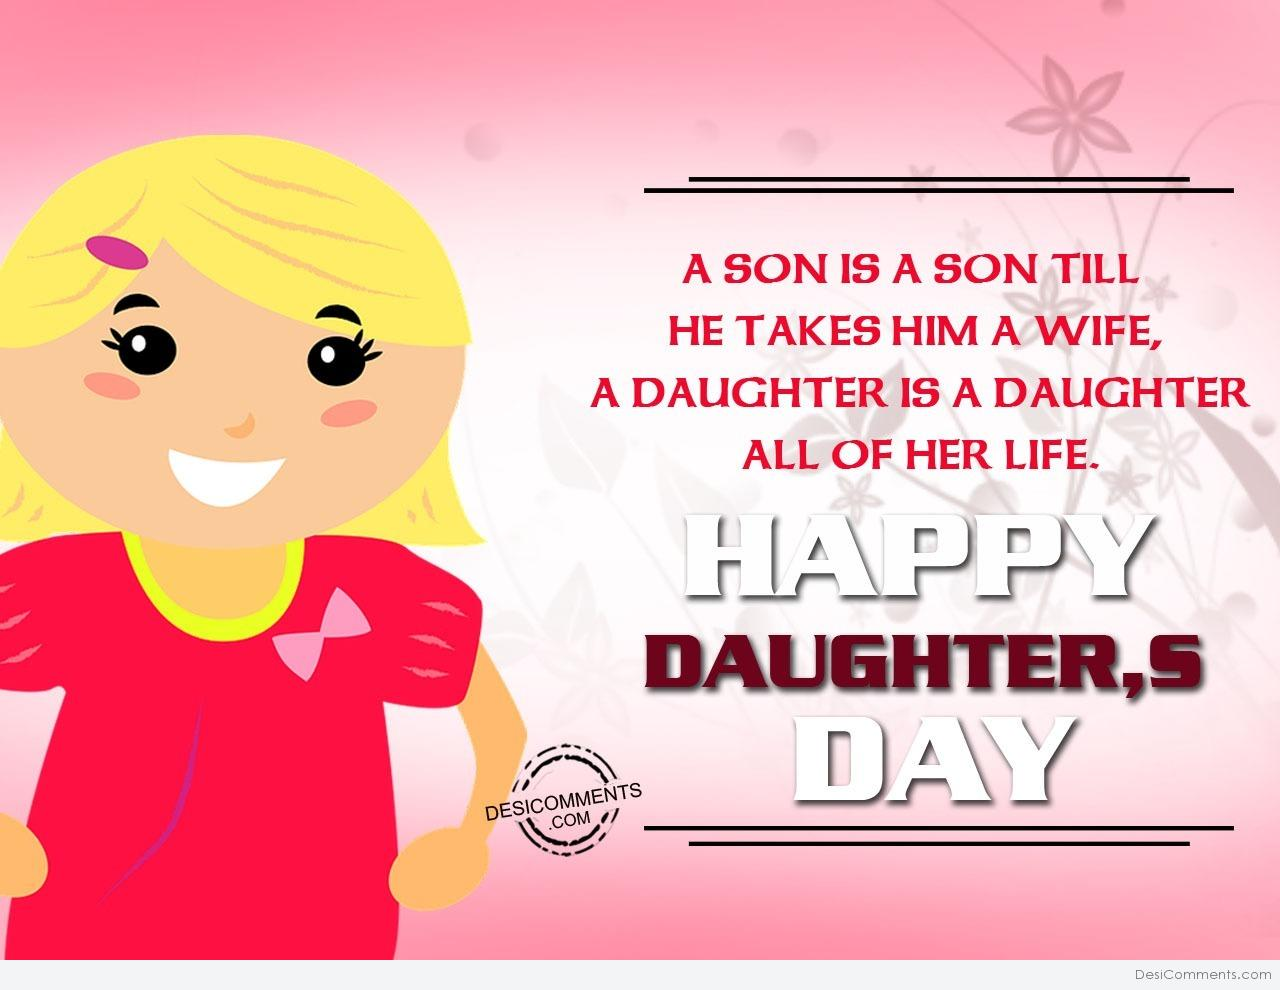 Daughters day pictures images graphics picture a son is son happy daughters day kristyandbryce Images